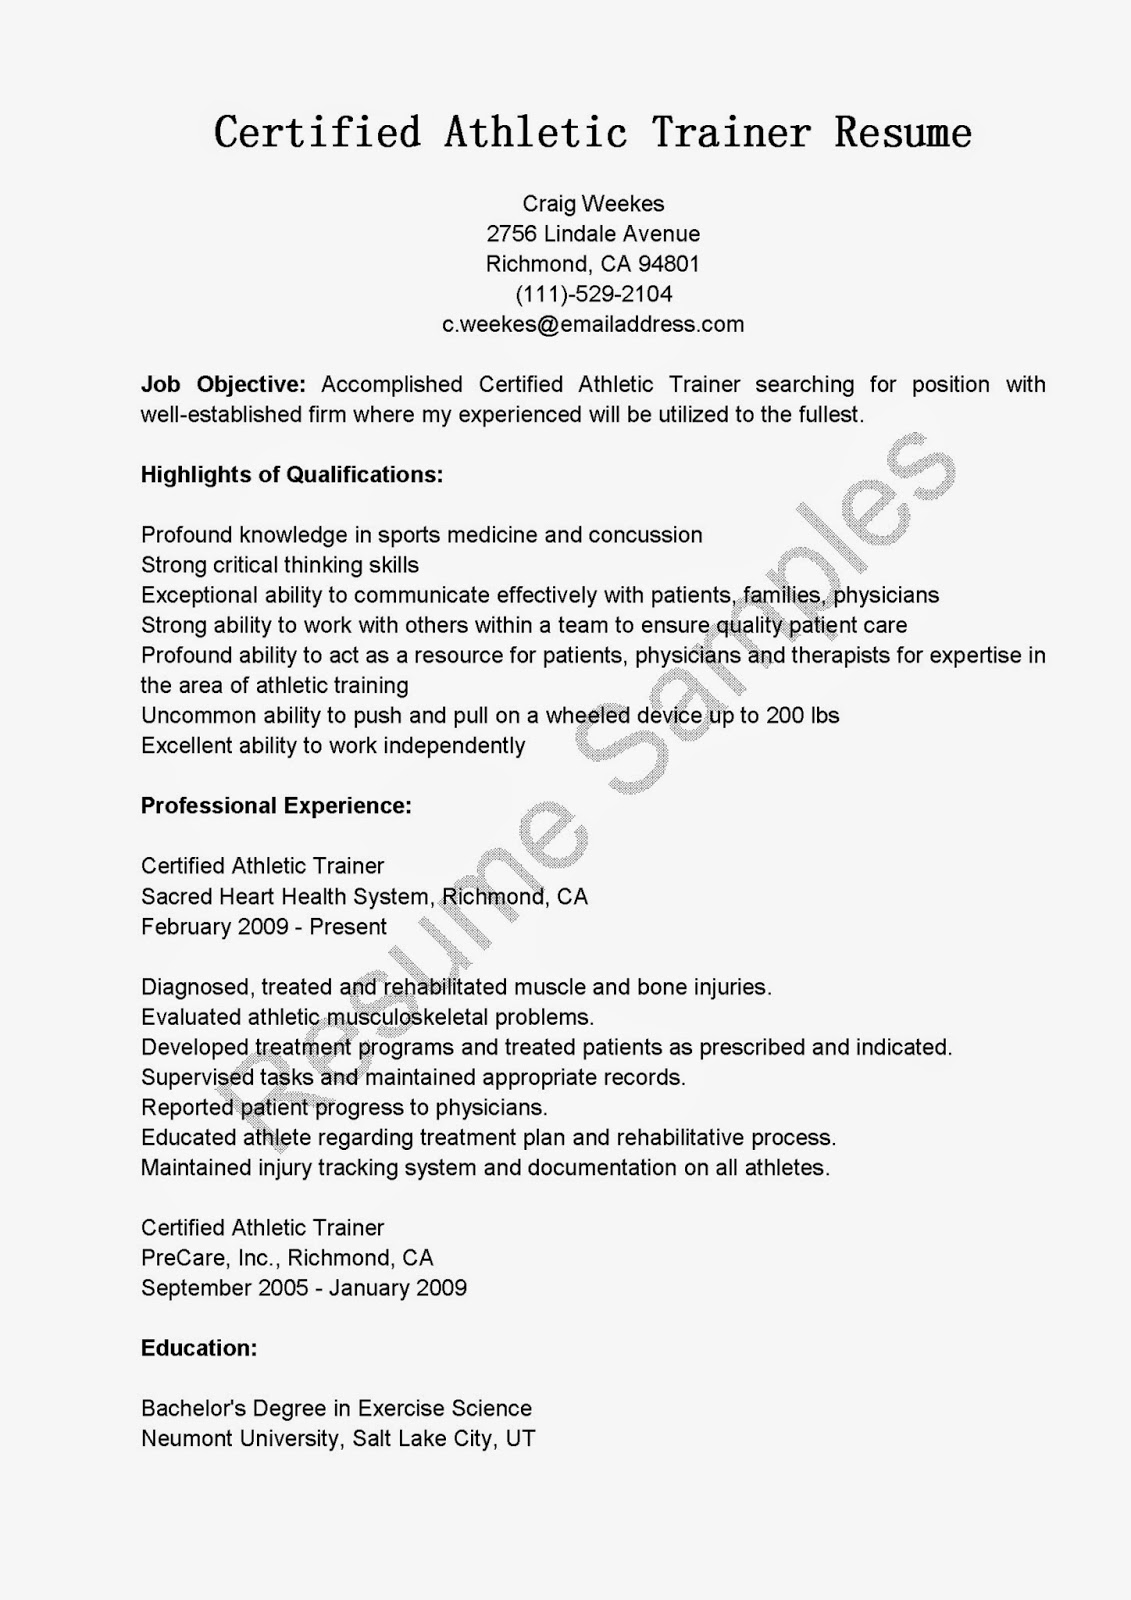 Personal Trainer Resume Objective Examples Resume Samples Certified Athletic Trainer Resume Sample